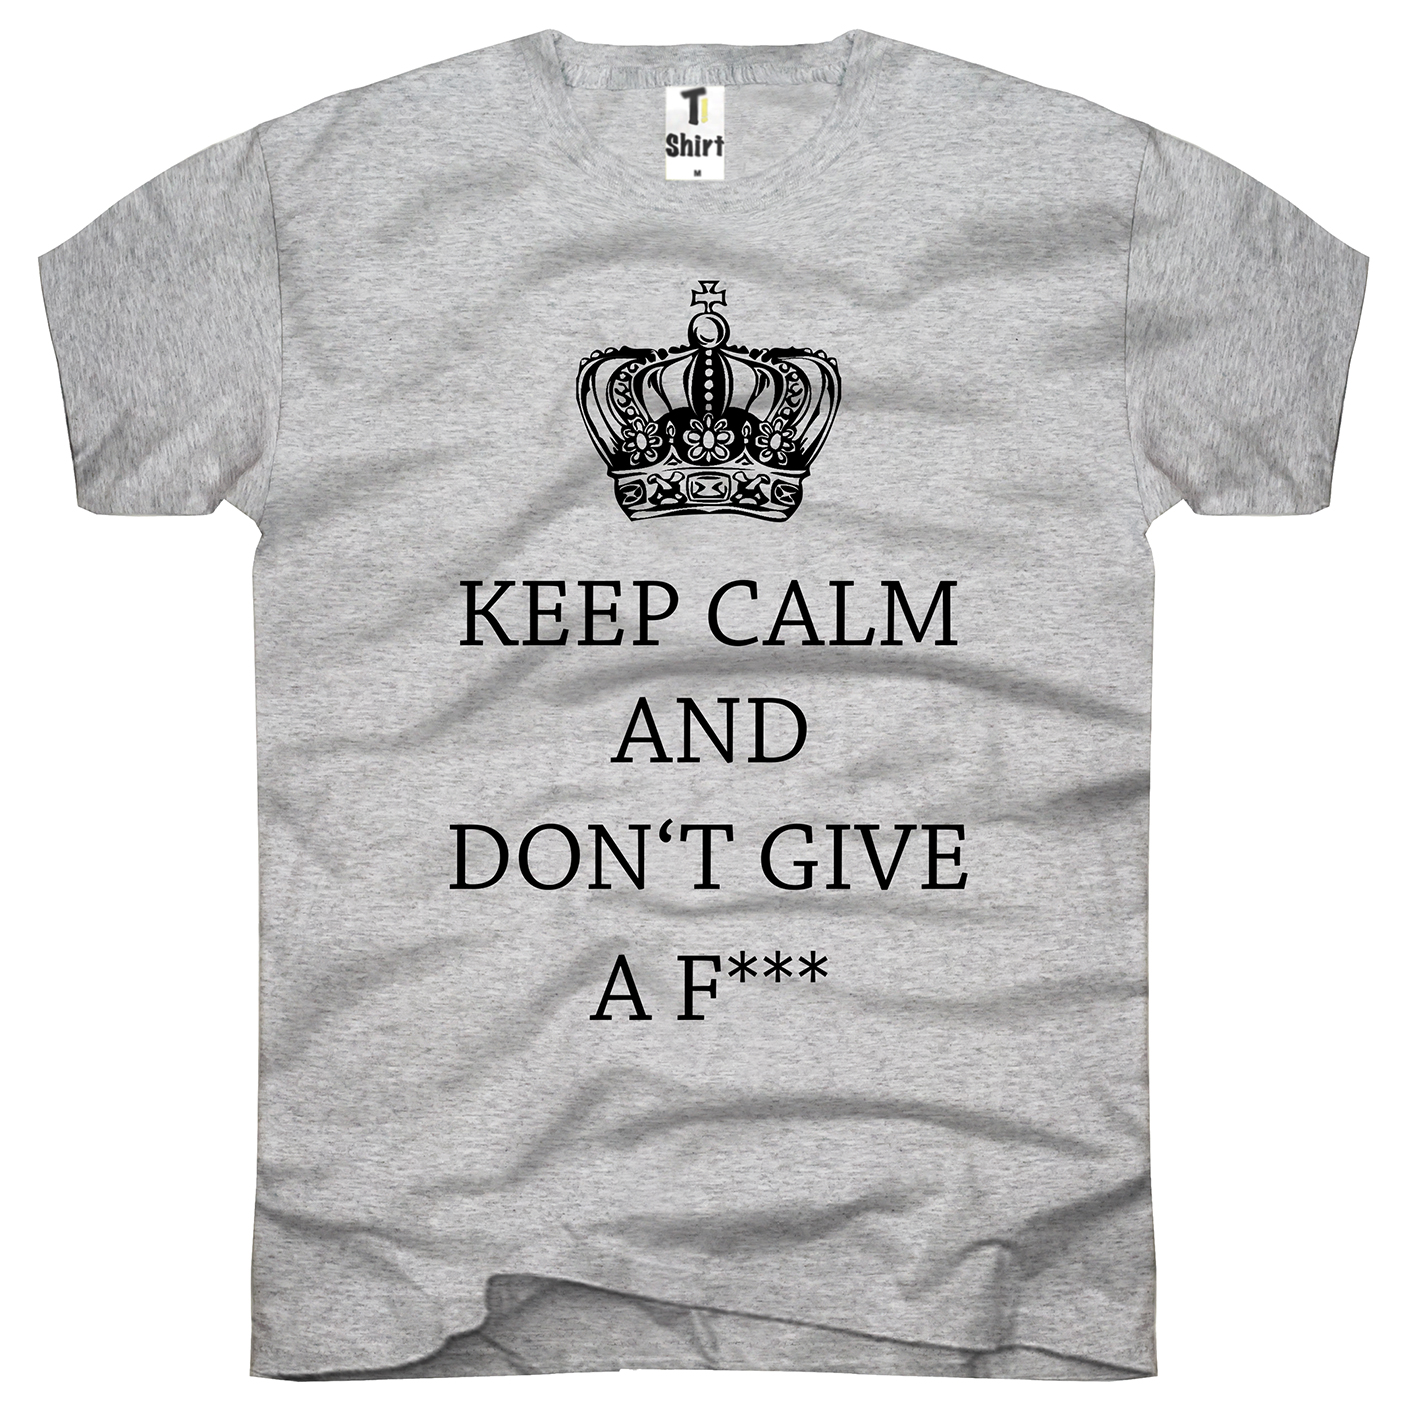 Herren T-Shirt Keep Calm Shirt